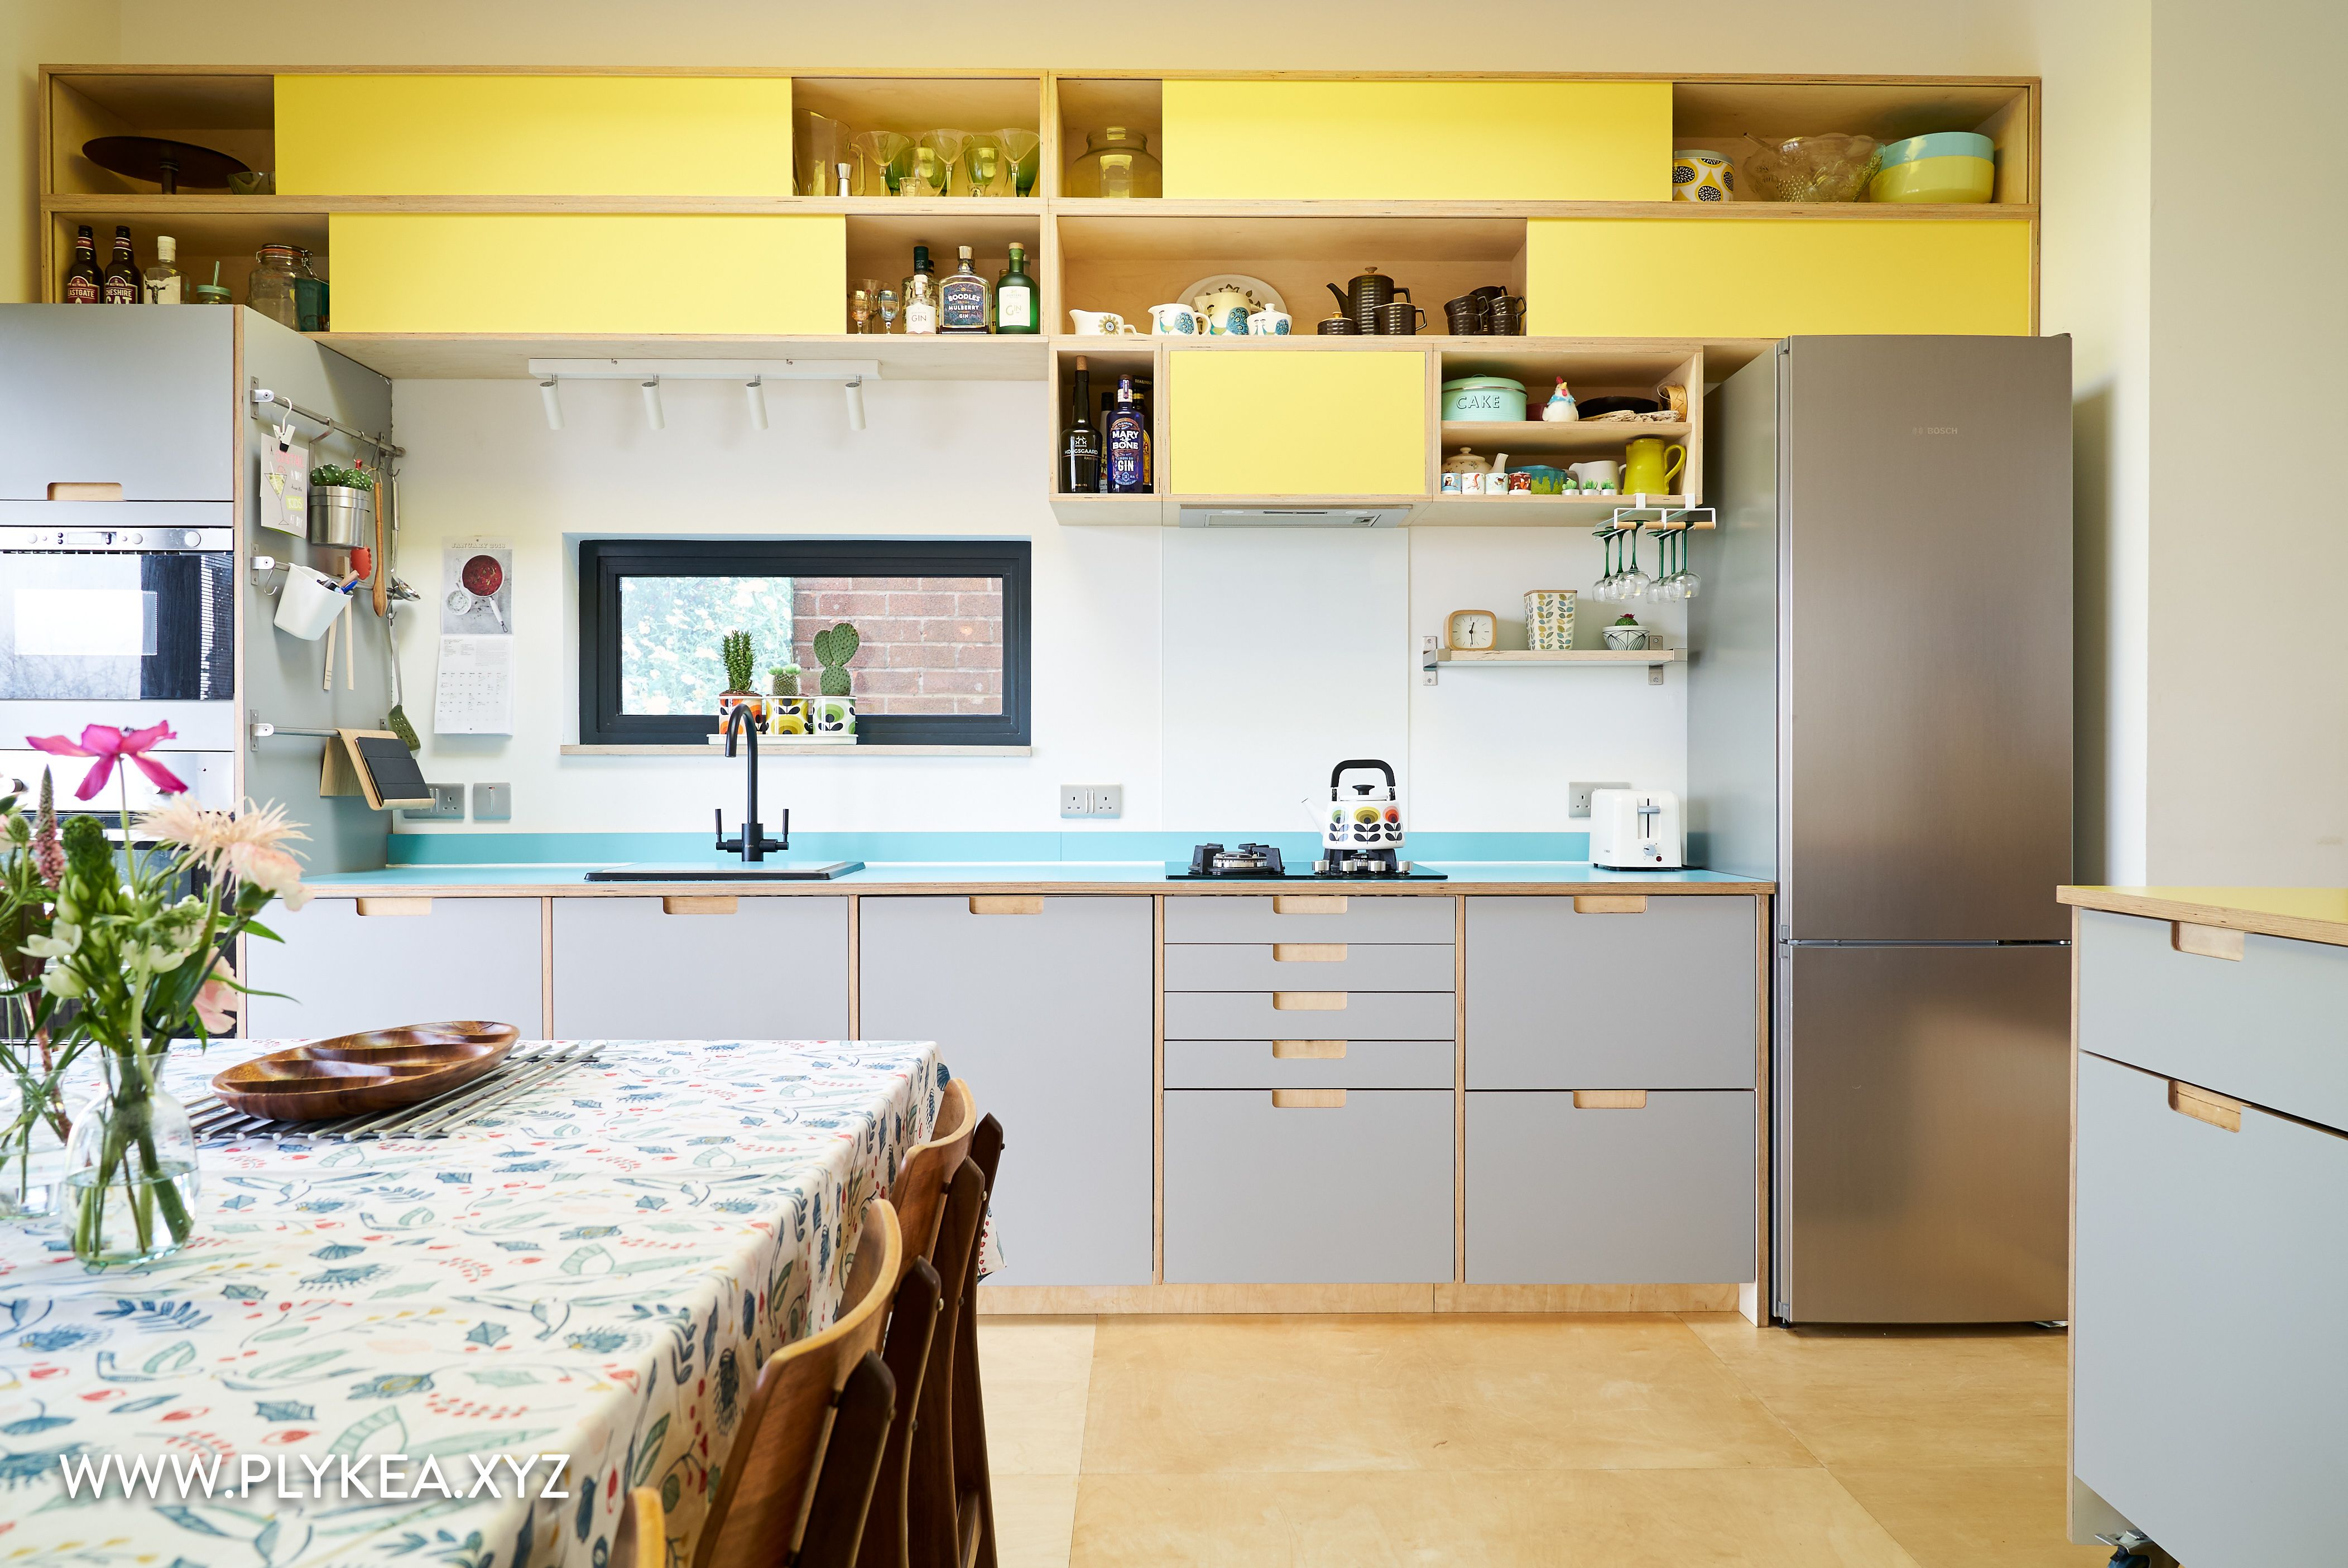 This Plykea kitchen features our modular shelving system along with ...